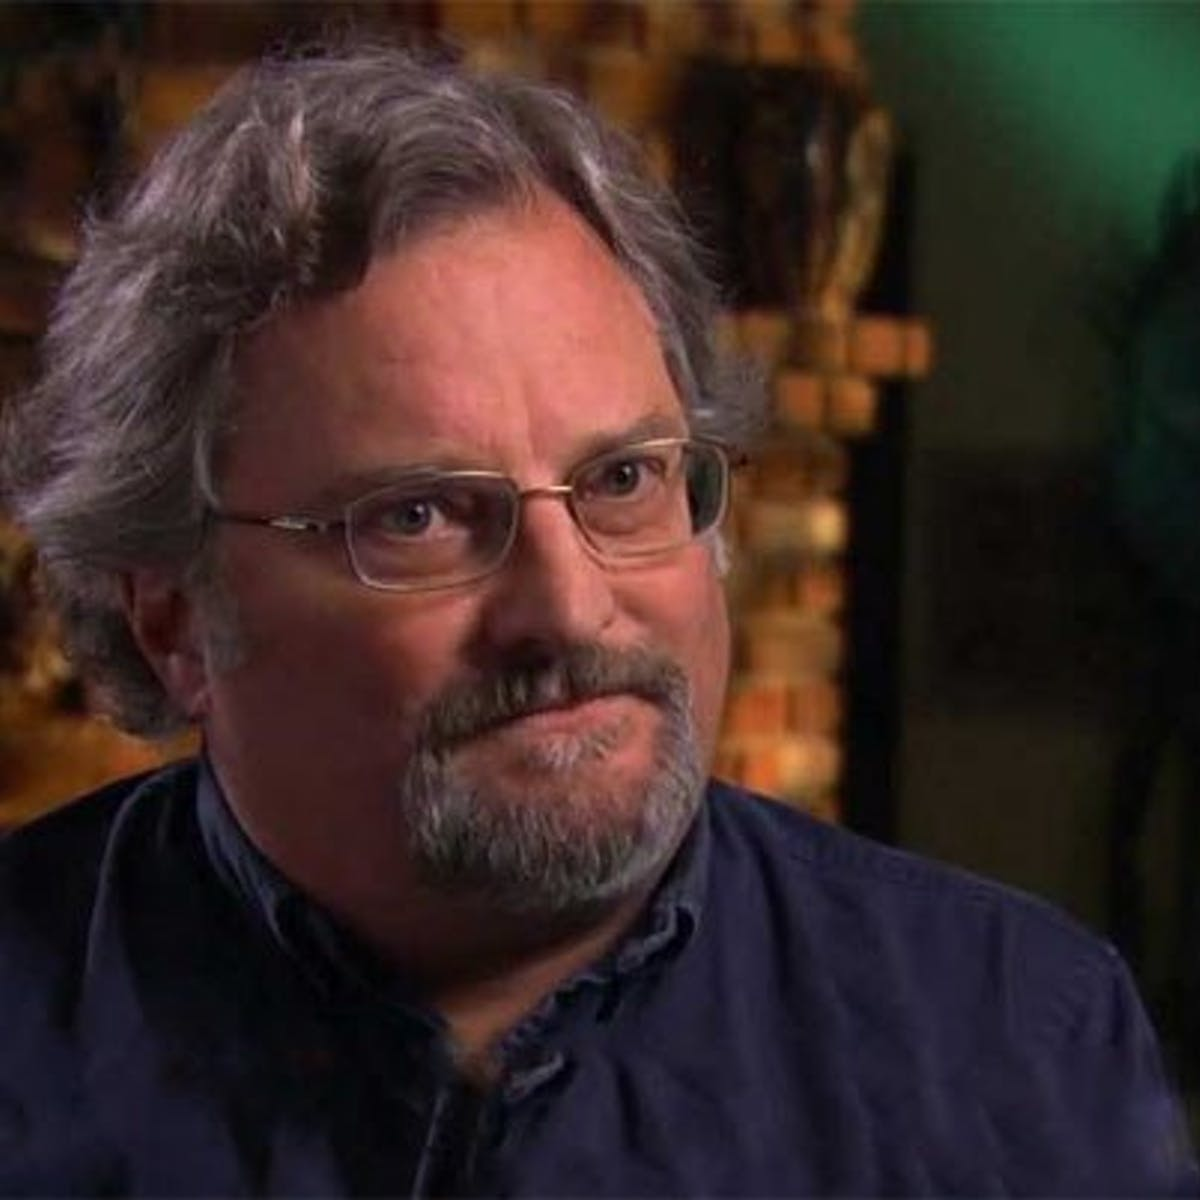 """Aliens, Bigfoot, and Atlantis: 21 Mind-Blowing """"Facts"""" From David Childress"""